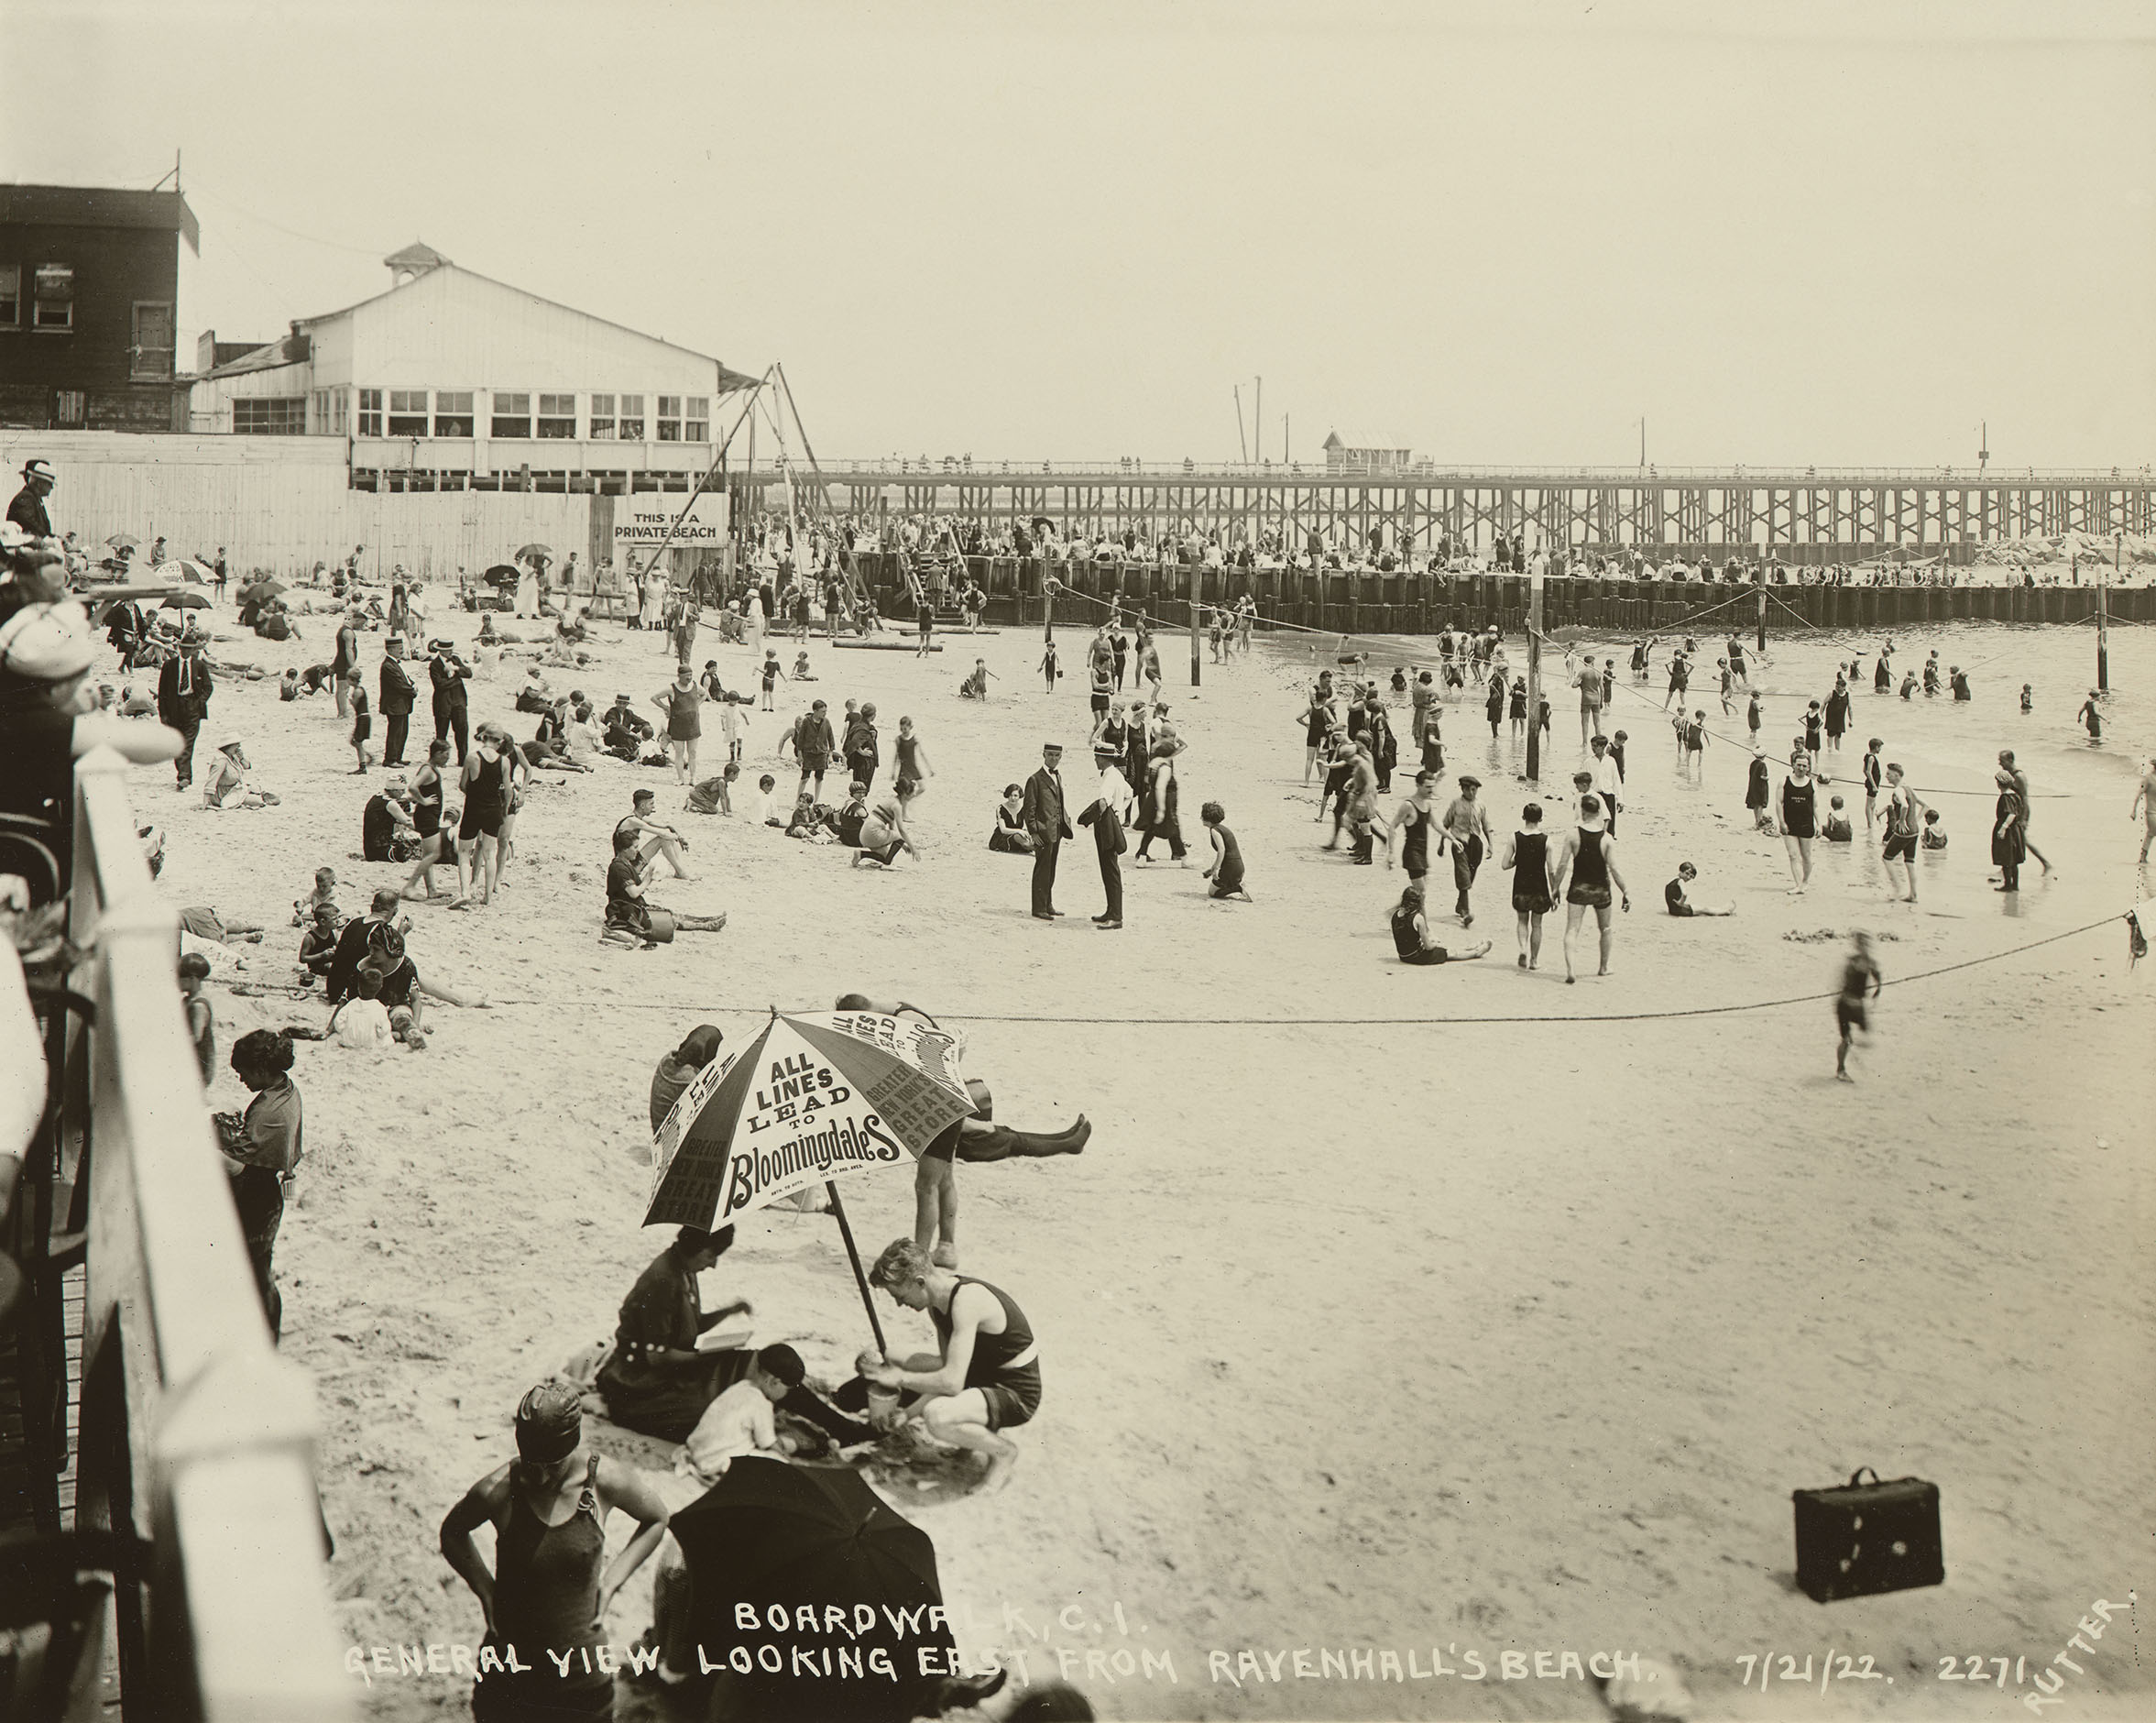 General view looking east from Ravenhall's Beach, July 21, 1922. Photo by E.E. Rutter, Borough President Brooklyn Collection, NYC Municipal Archives.